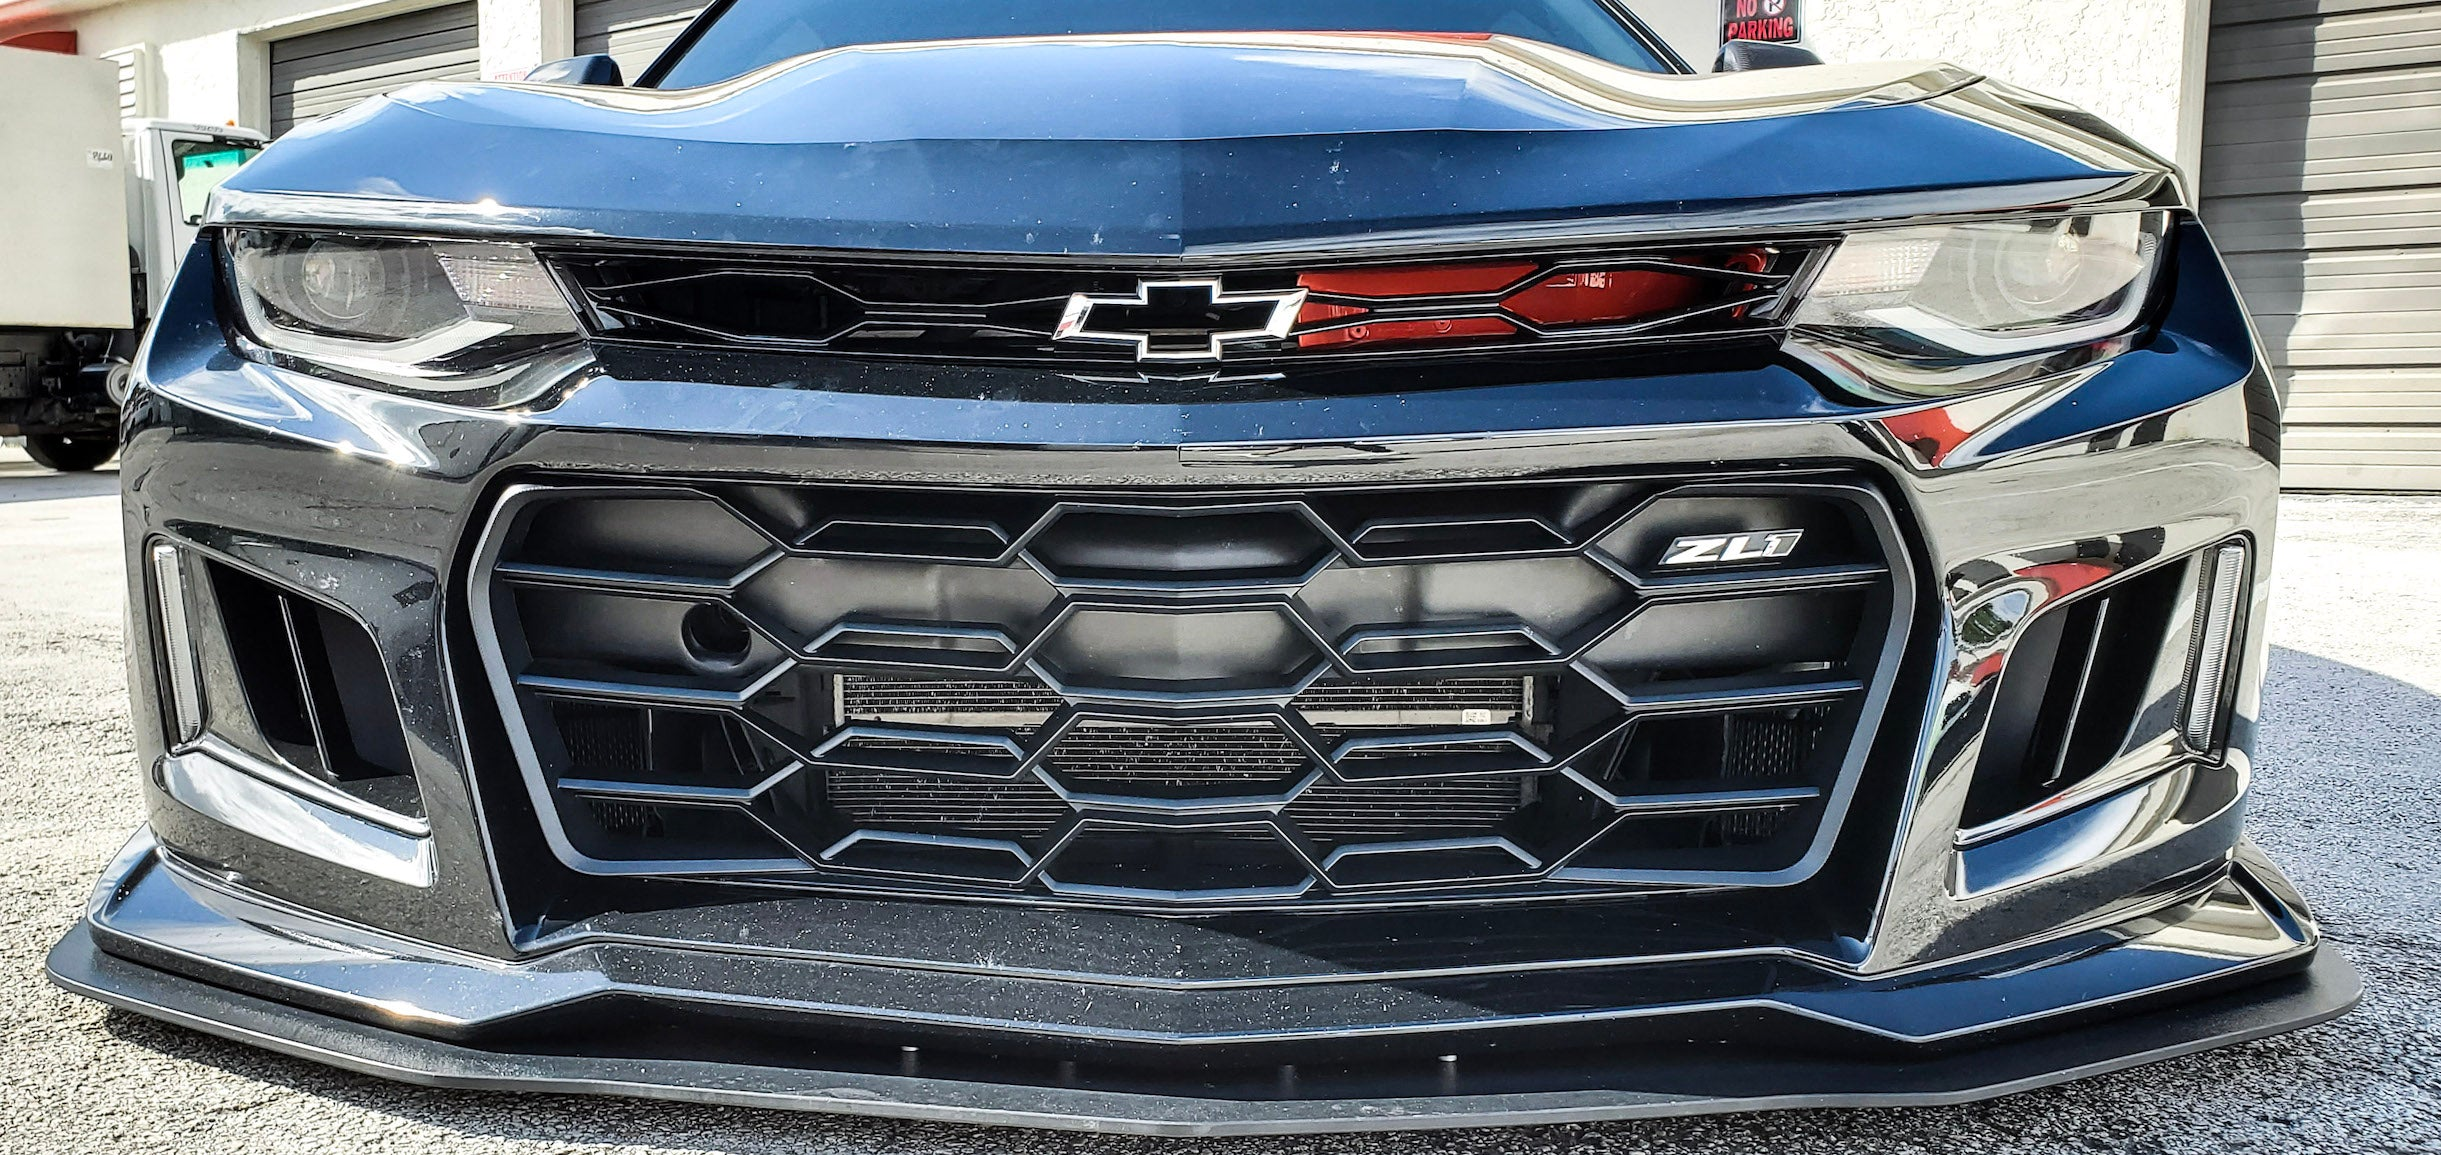 Real-World Test Results for the 2017-2020 Chevrolet Camaro ZL1 and 2016-2018 Camaro SS BIG MOUTH Ram Air Intake Snorkel